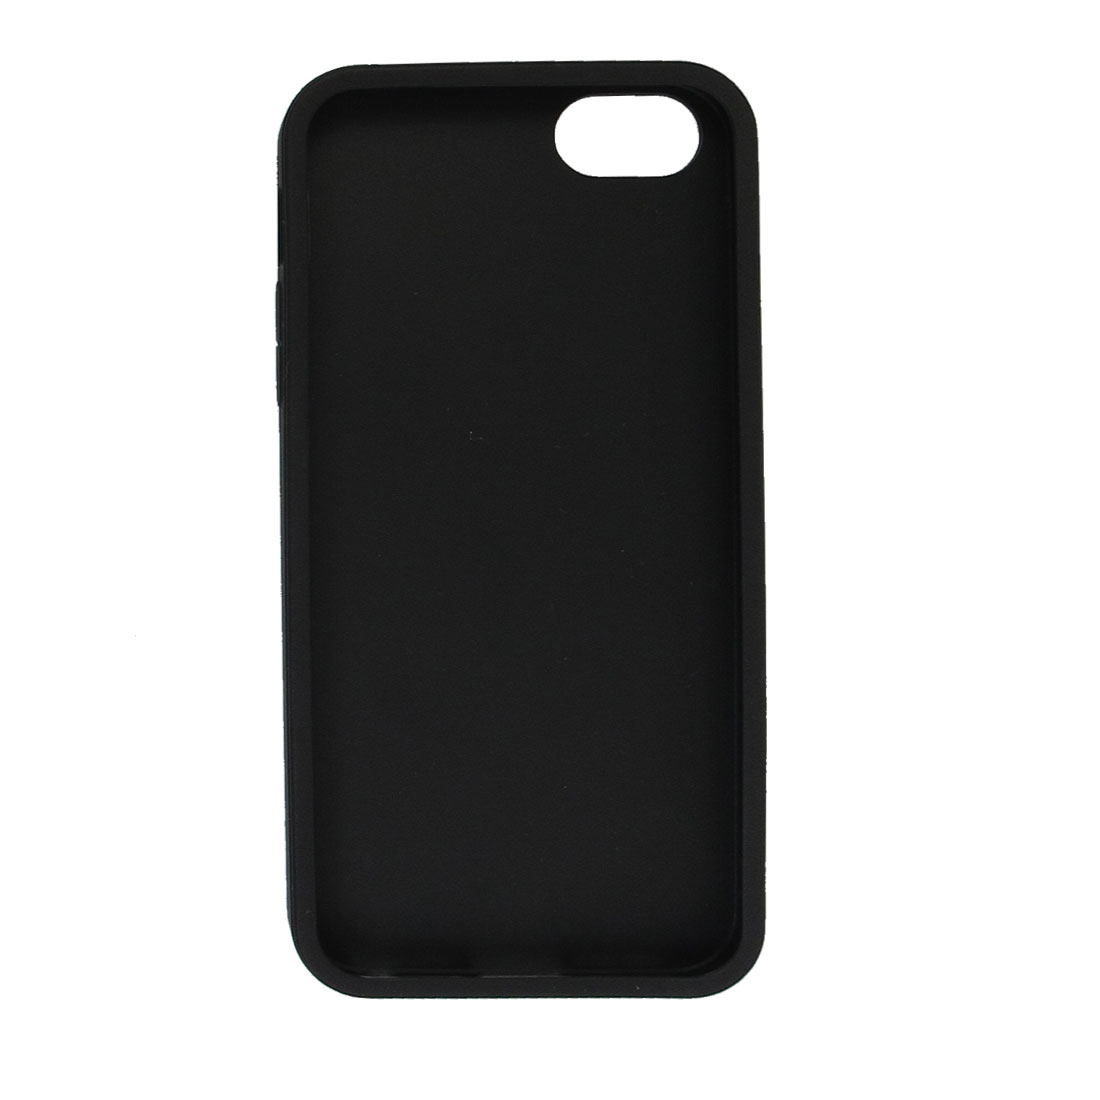 Black Soft Plastic Patterned Protective Back Cover Case Shield for iPhone 5 5G